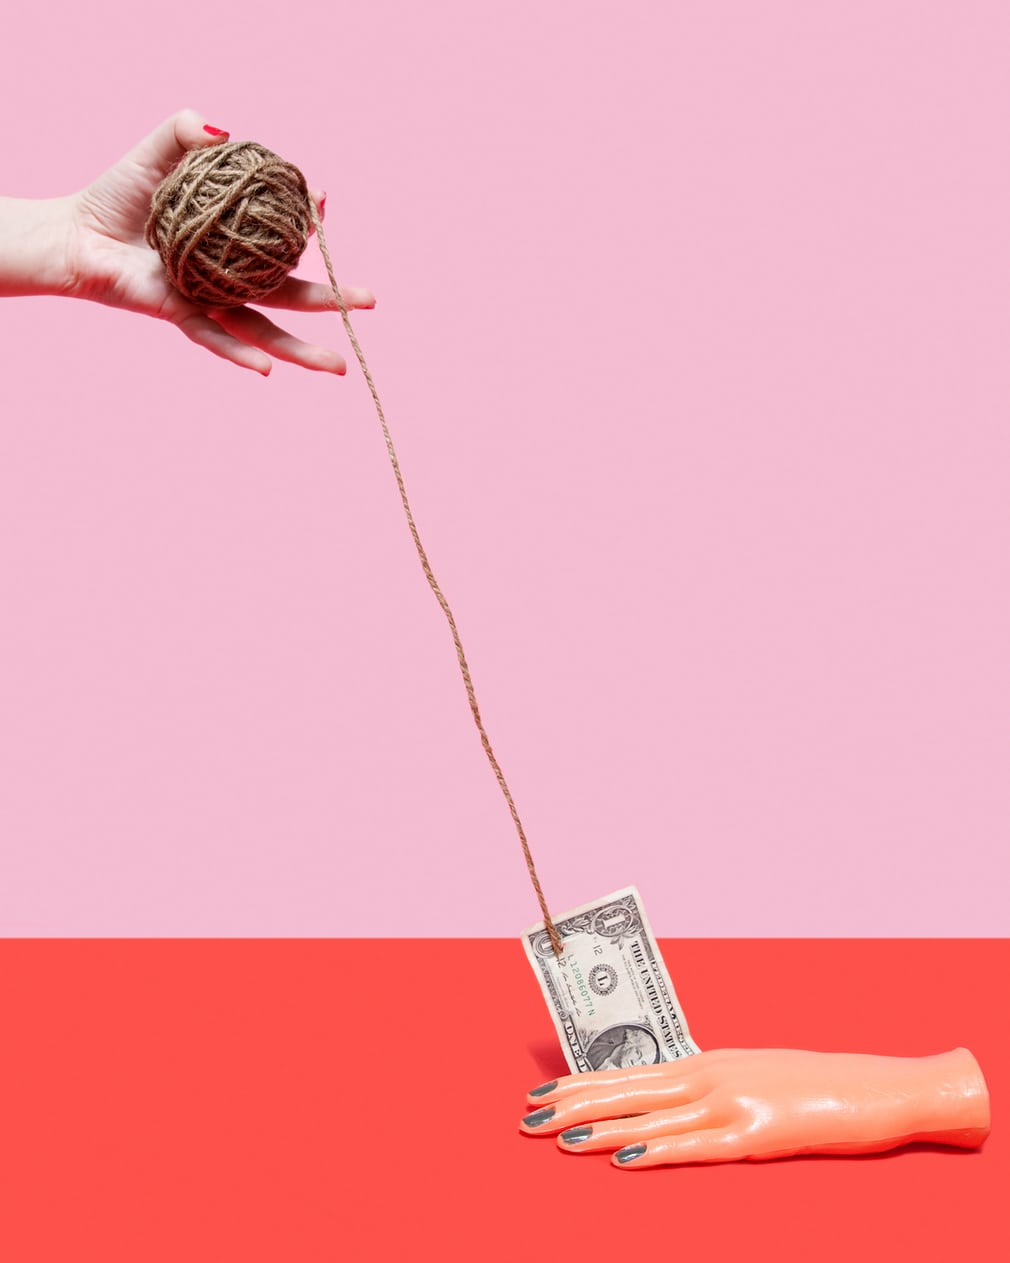 Photographer Olivia Loсher Showed Absurd American Laws - In Pictures